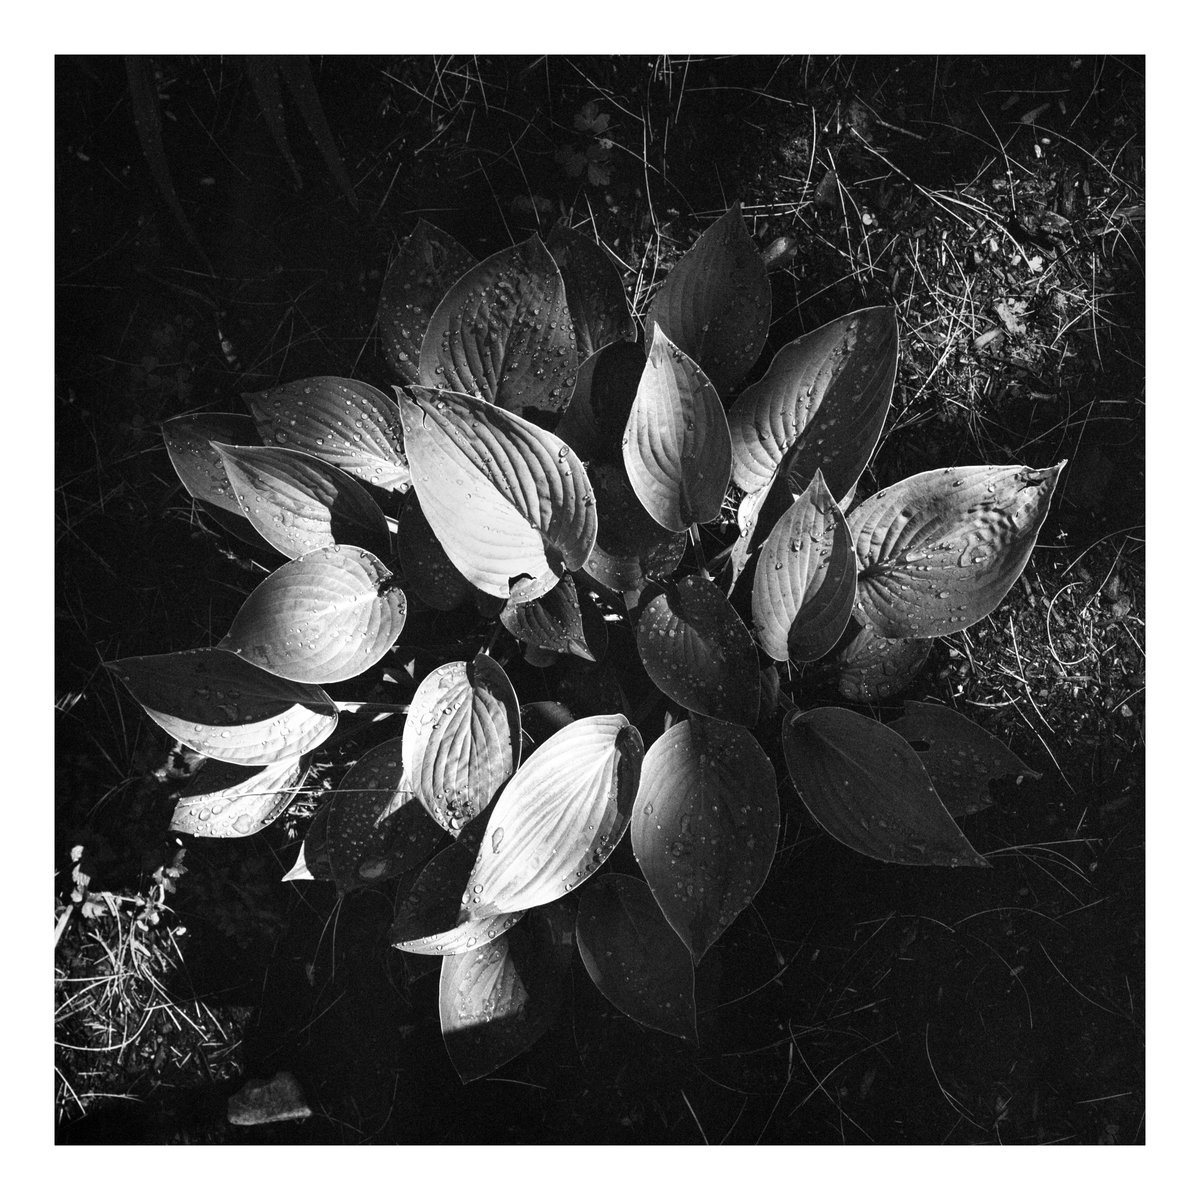 #MonochromeMonday After the rain falls...a raindrop covered plant in Odell Park. (Intrepid 4x5 mk3, Fujinon 150mm 5.6, f32 1/15 Bergger Pancro 400) . #filmphotography #filmisnotdead #largeformat   #3leggedthing #Fredericton #blackandwhite #nature #staybrokeshootfilm #analoguepic.twitter.com/C574Mw1lNP